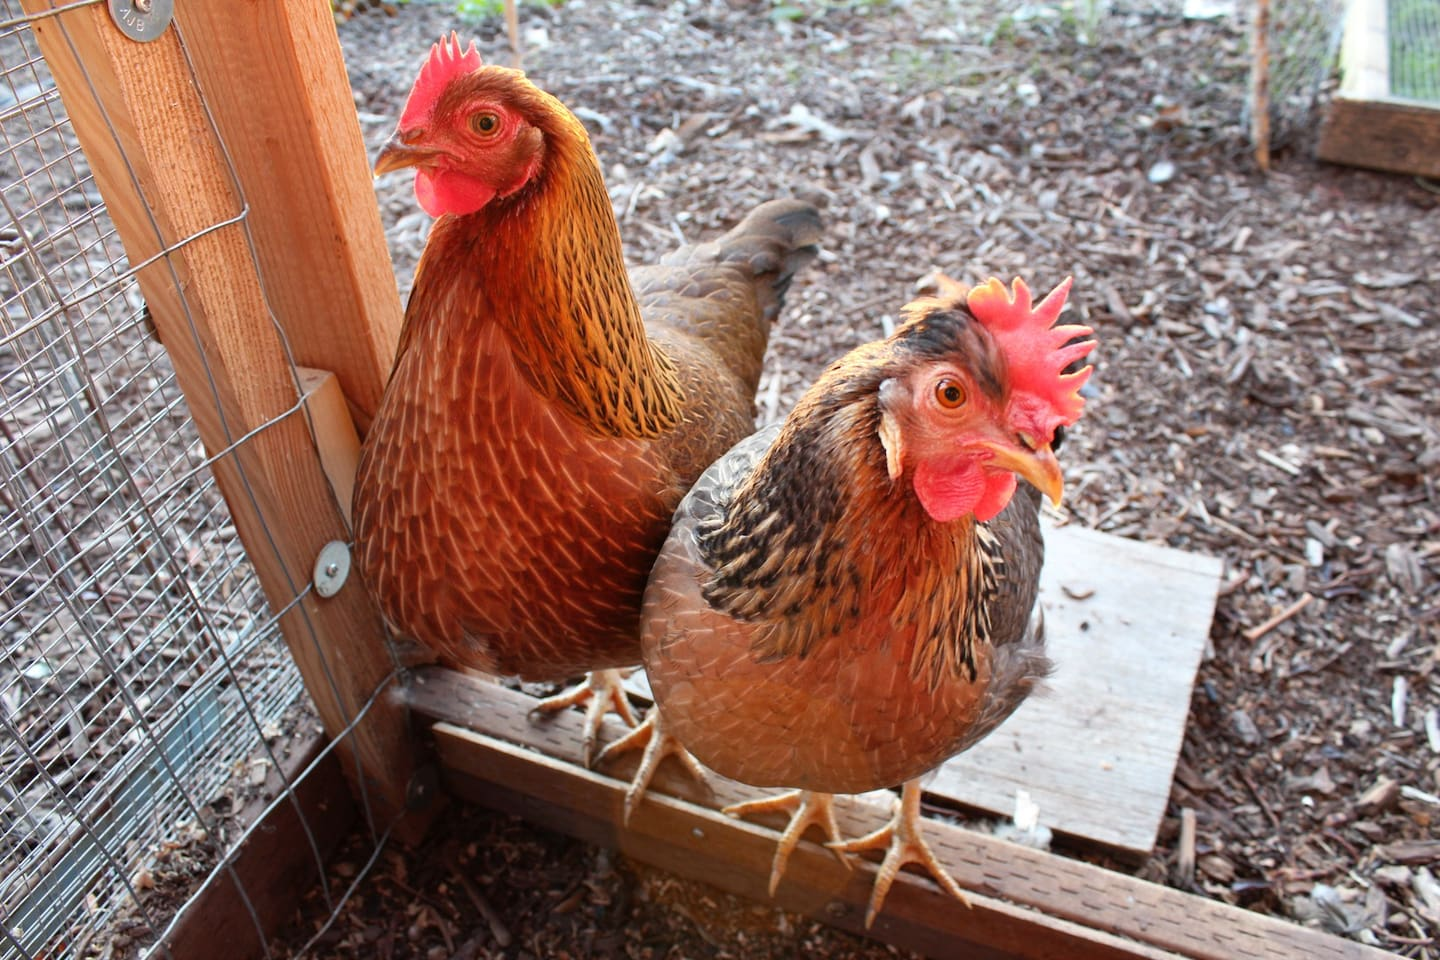 Chicken theater (all hens) with complimentary eggs when they're in season.